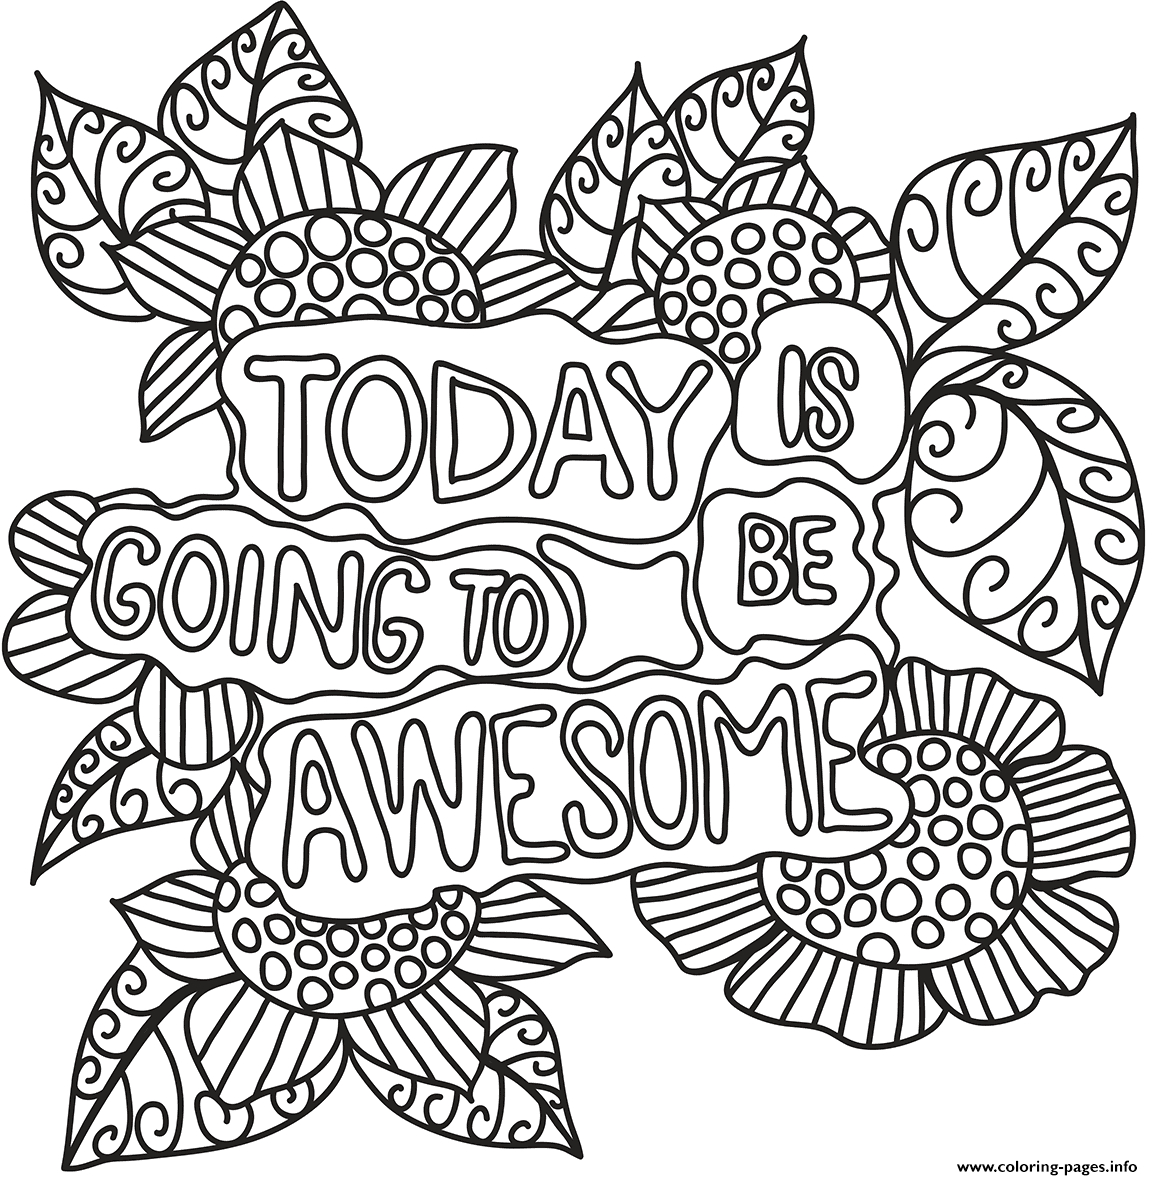 Today is Going to Be Awesome Coloring Page today is Going Be Awesome Coloring Pages Printable